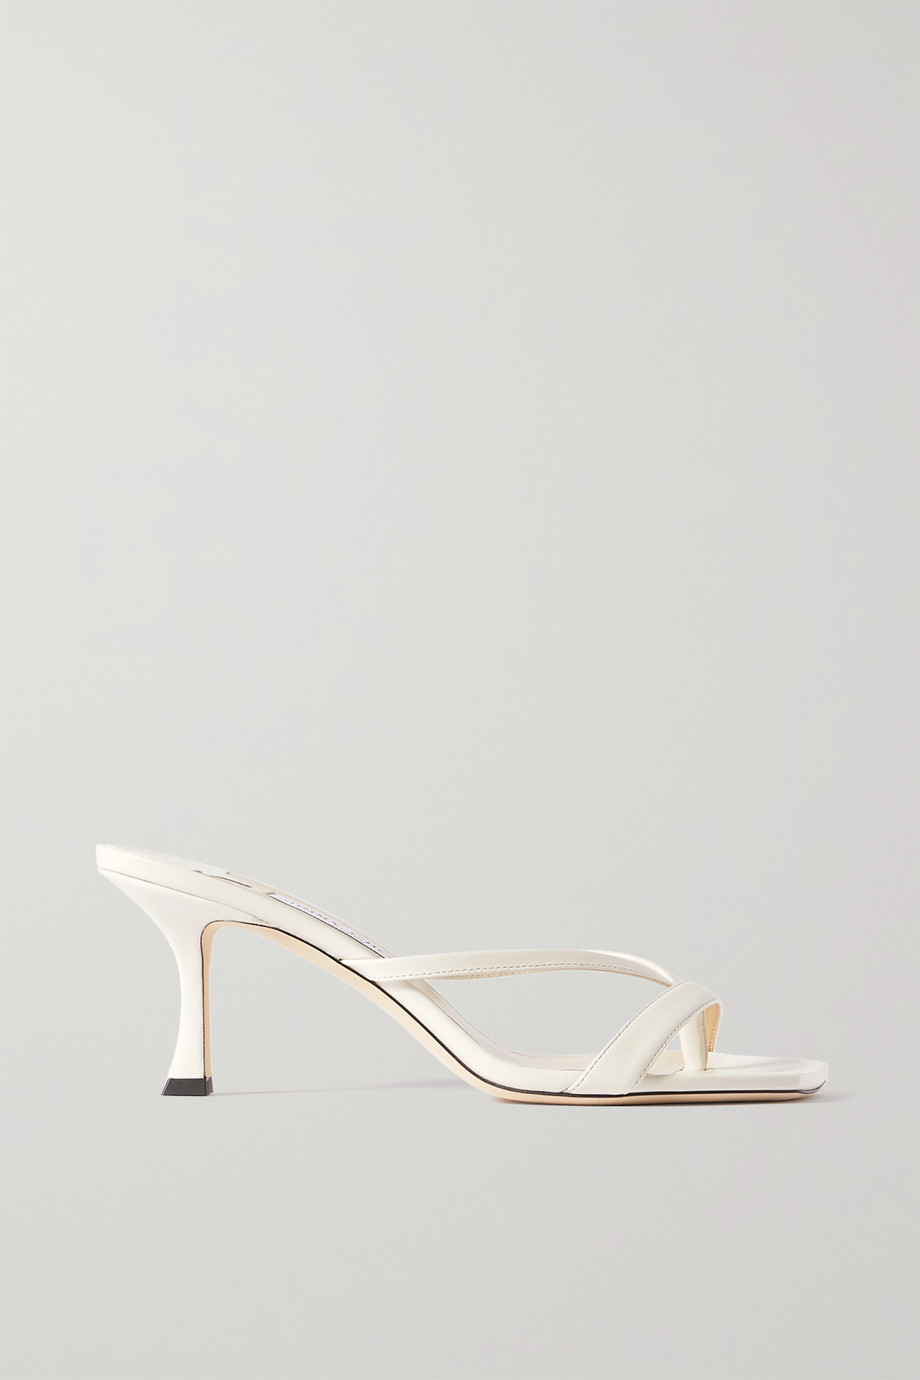 Jimmy Choo Maelie 70 leather sandals